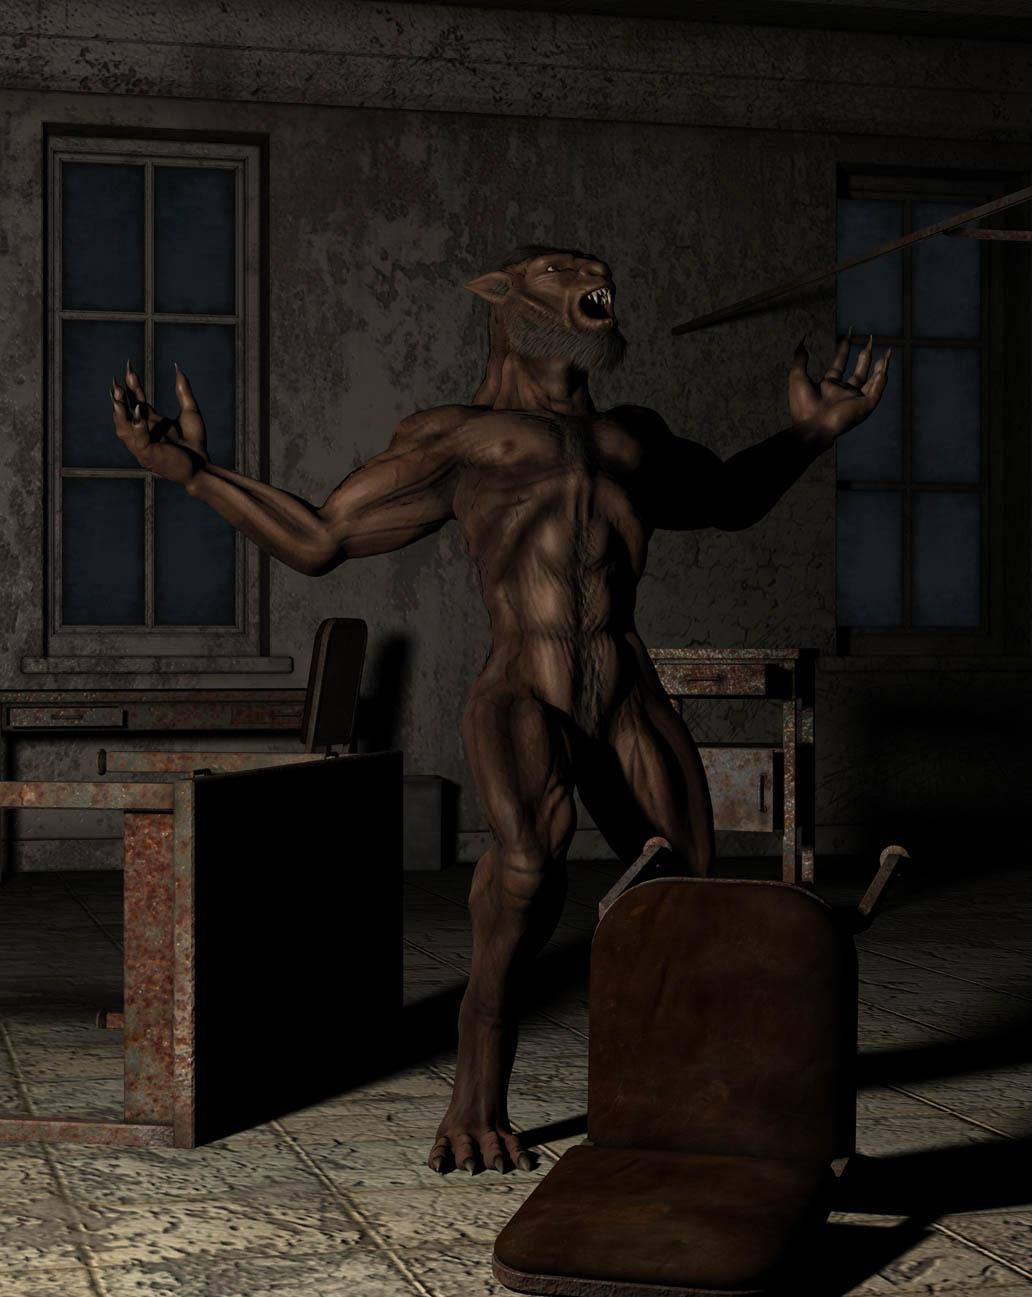 Werewolf in the old asylum by starbase1